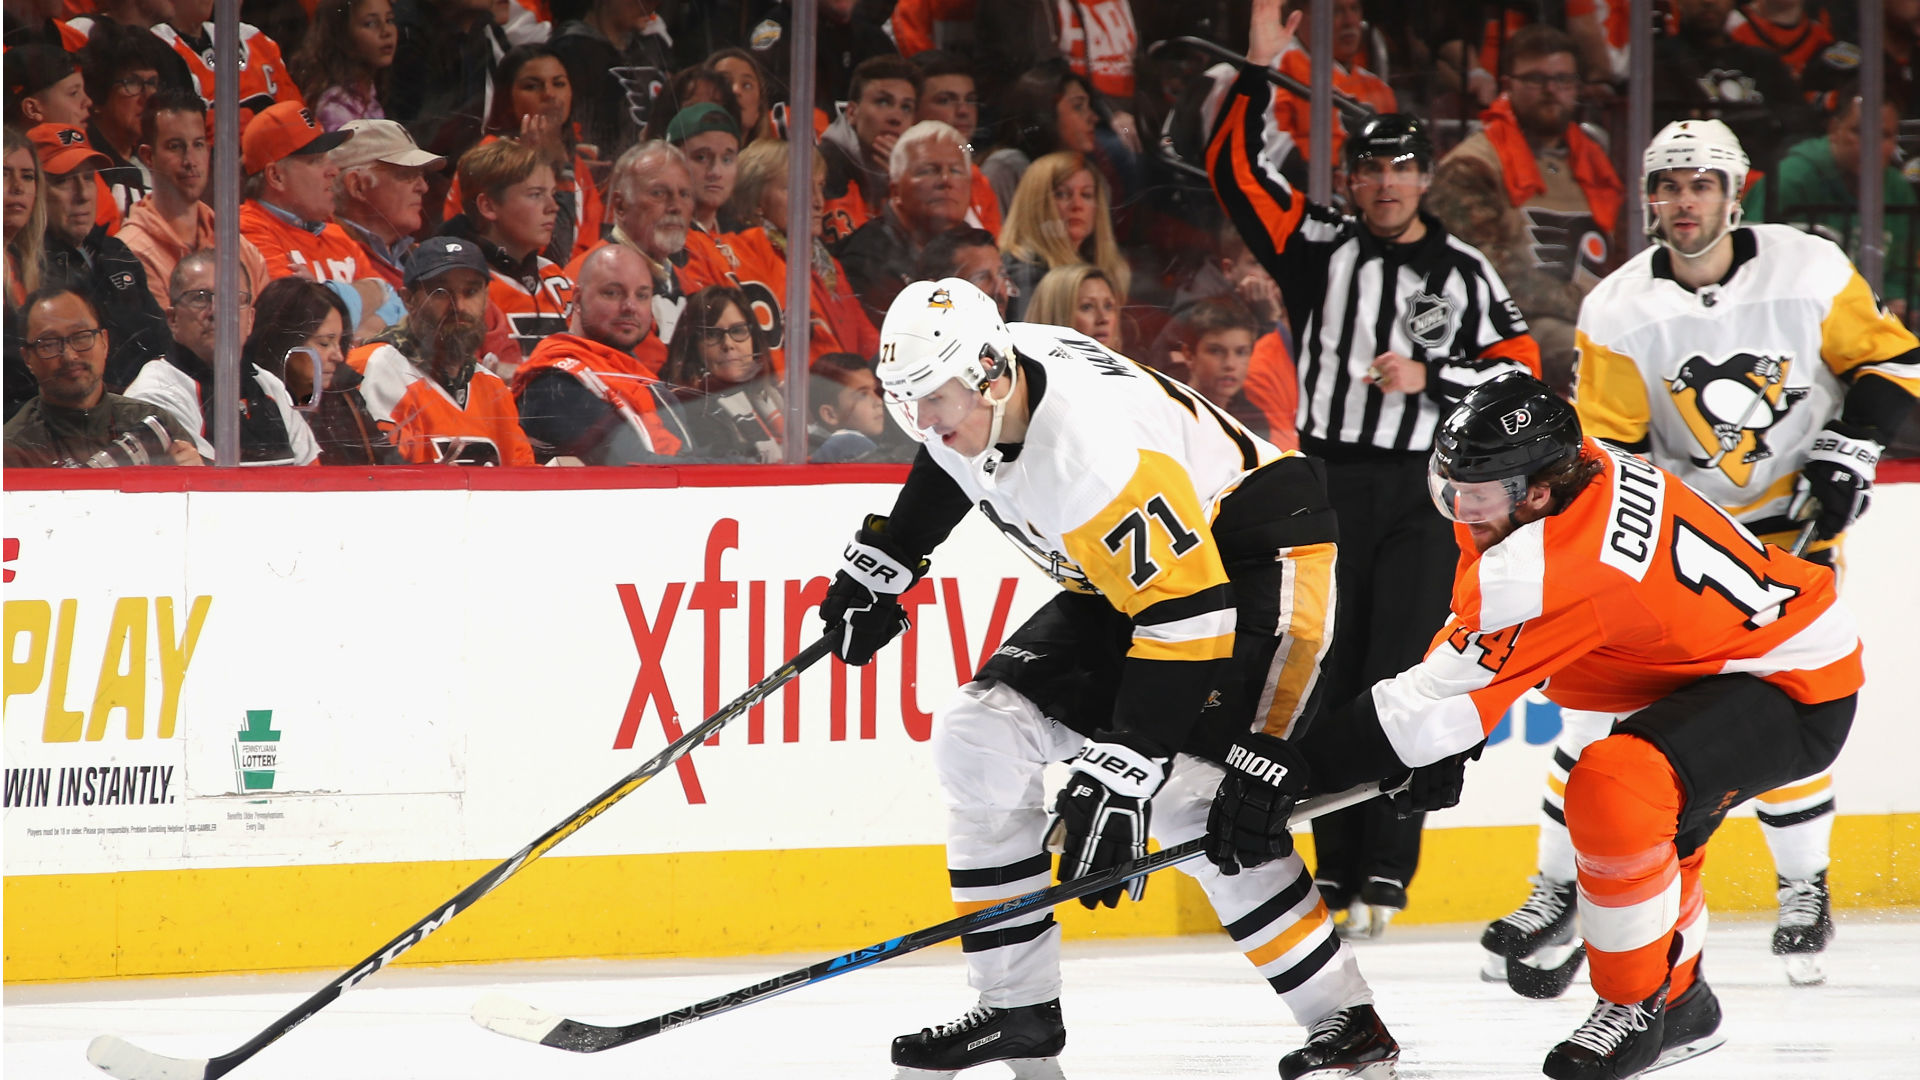 Flyers blanked by Penguins in Game 4, 5-0